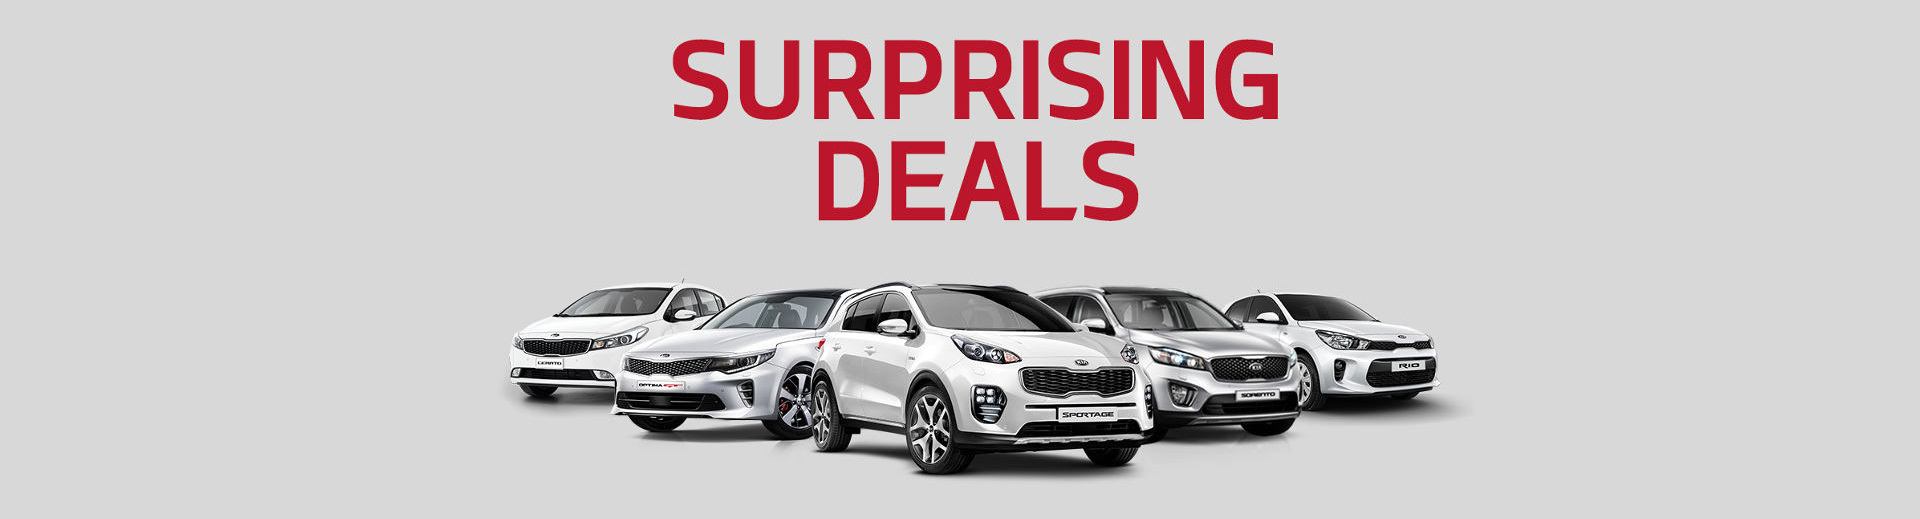 Kia - National Offer - Surprising Deals